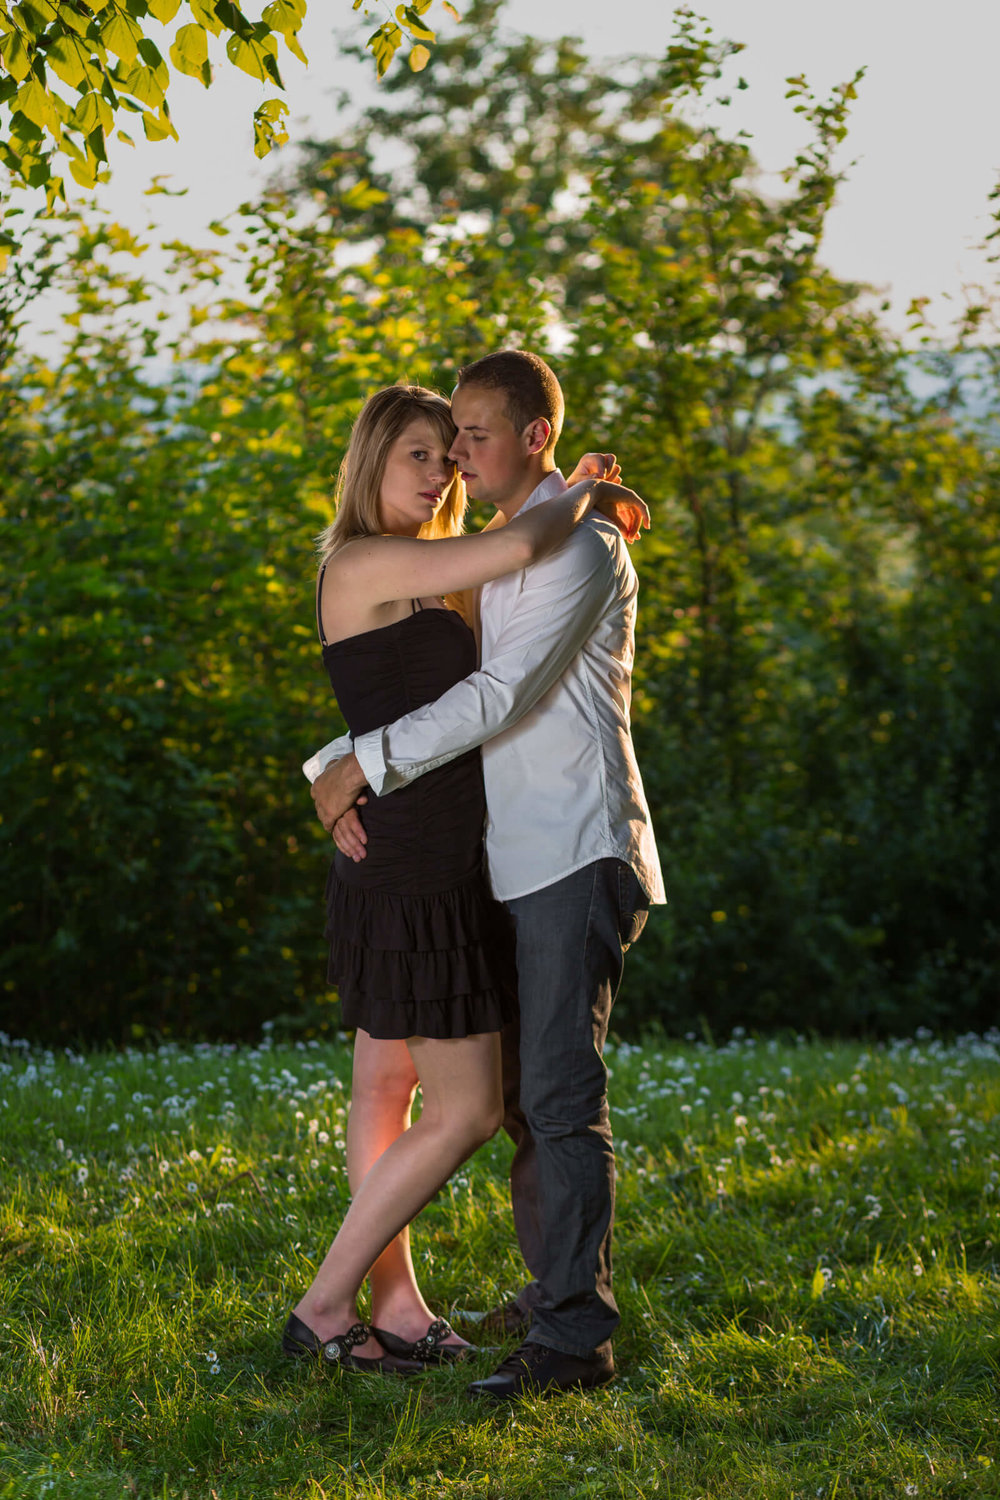 Photographe epernay Photo couple Tristan Meunier-7.jpg